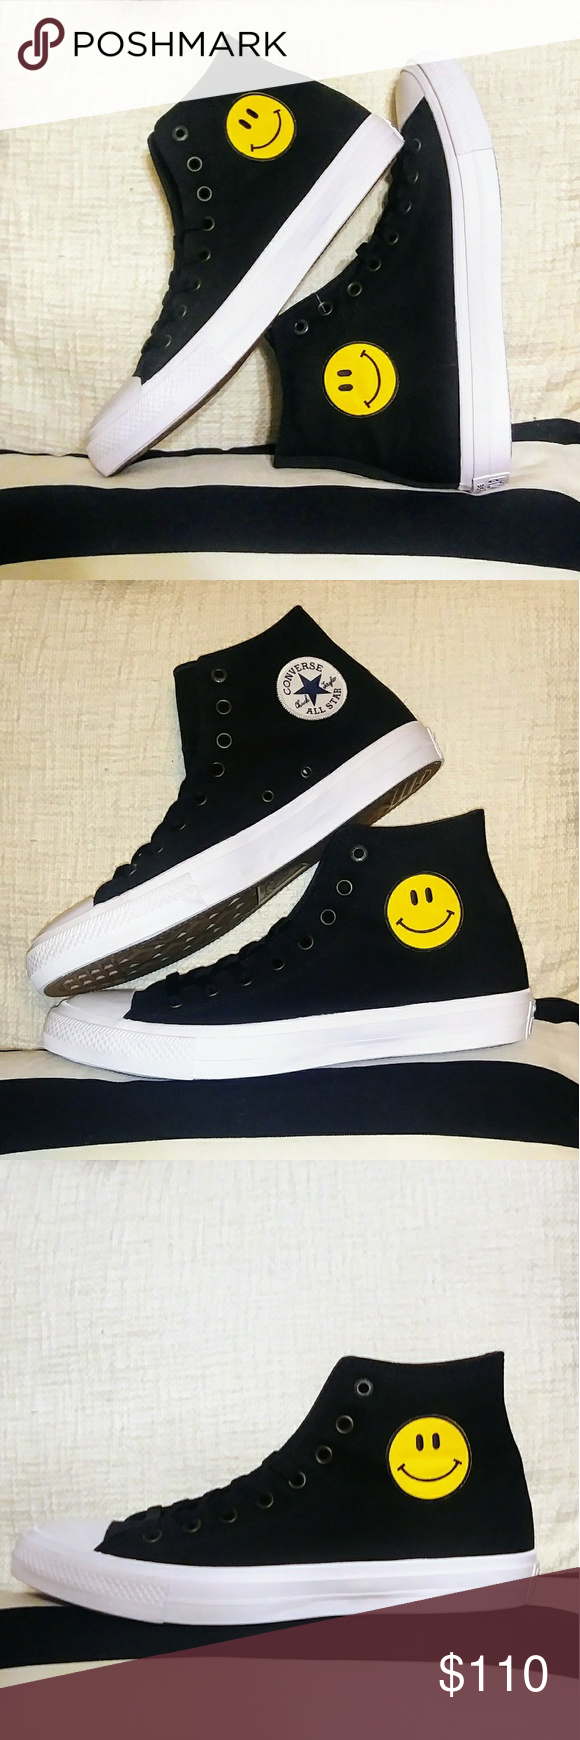 NWT Custom Smiley Face Converse Chuck Taylor Shoes - Custom